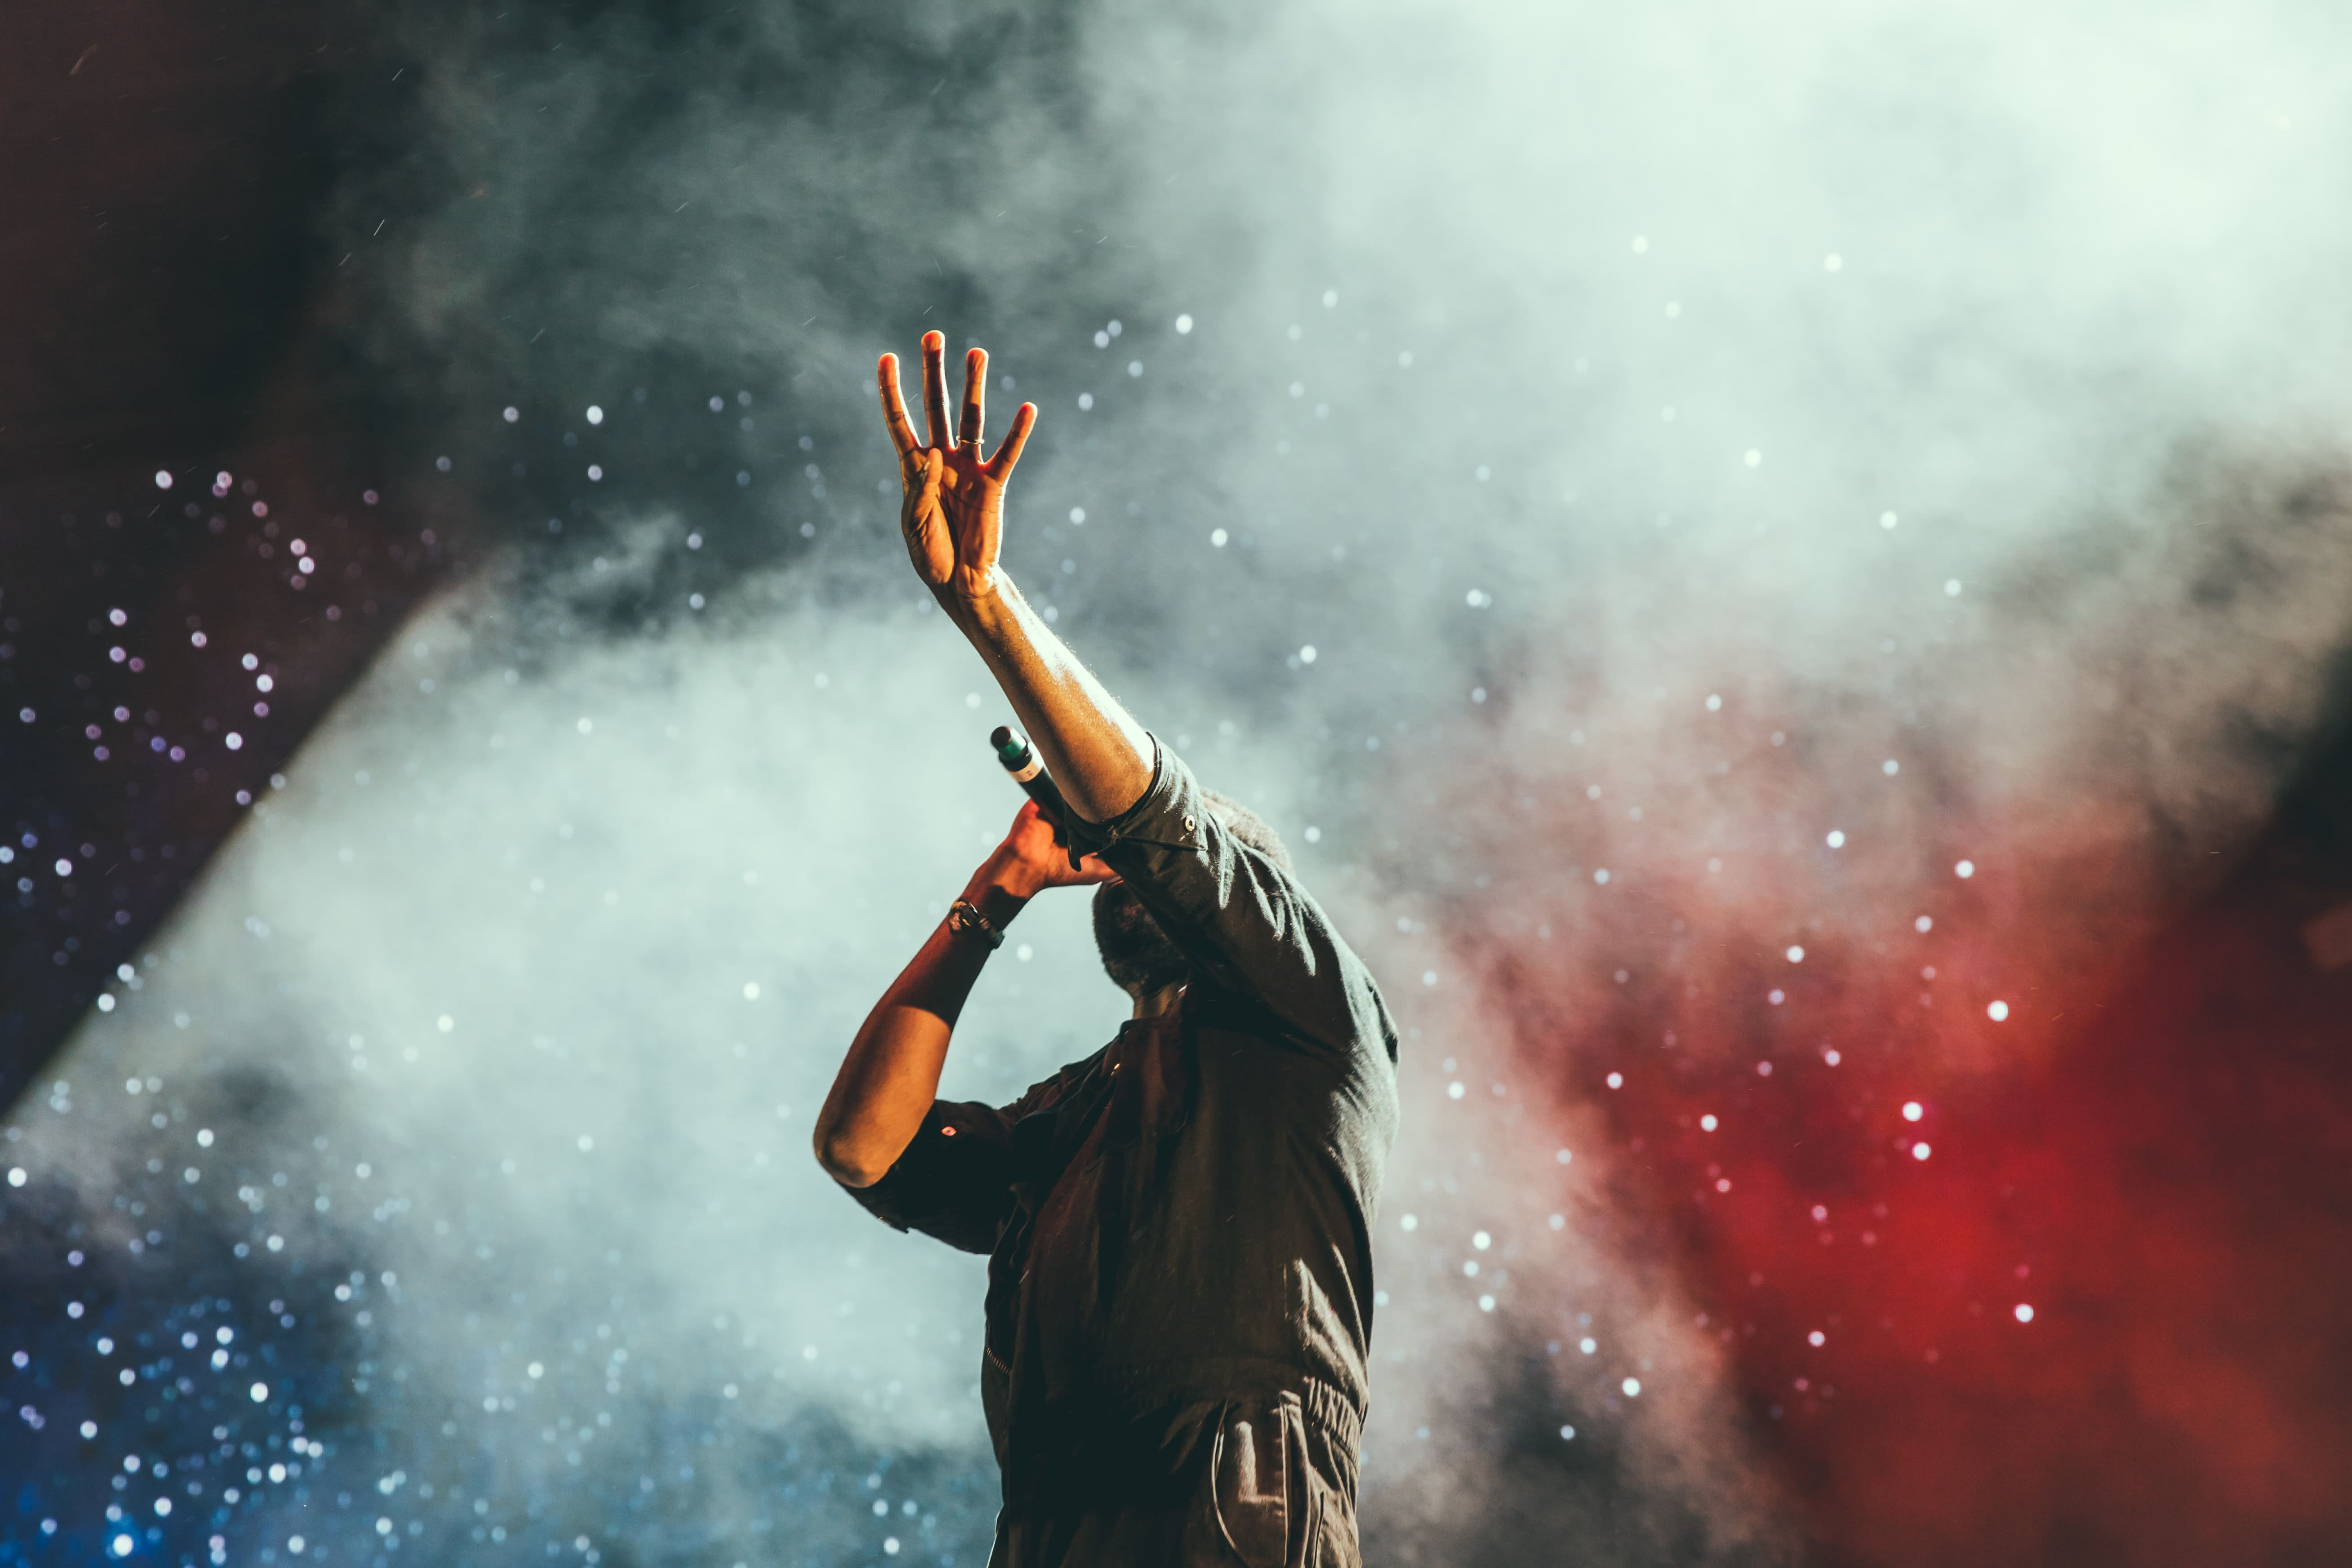 picture of an music artist on stage while performing